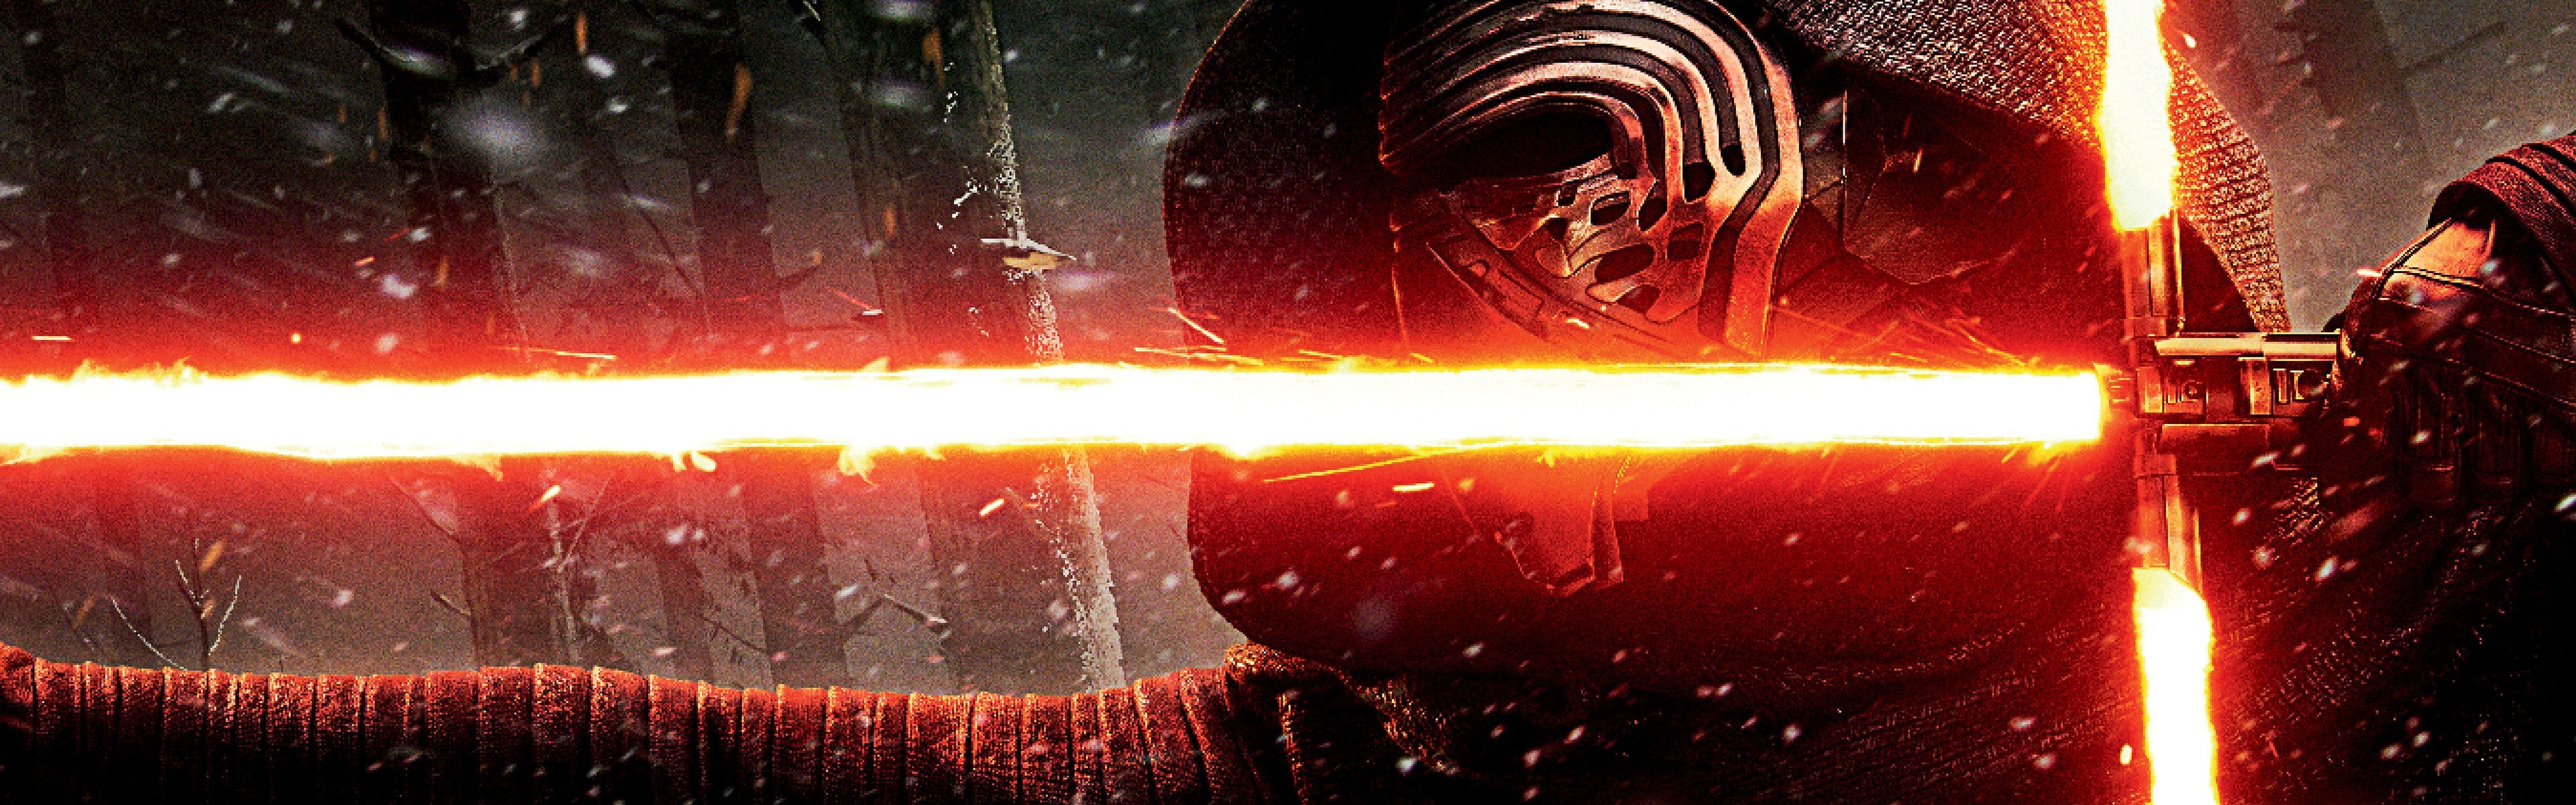 Kylo Ren, Lightsaber, Star Wars: The Force Awakens, Movies Wallpapers HD /  Desktop and Mobile Backgrounds